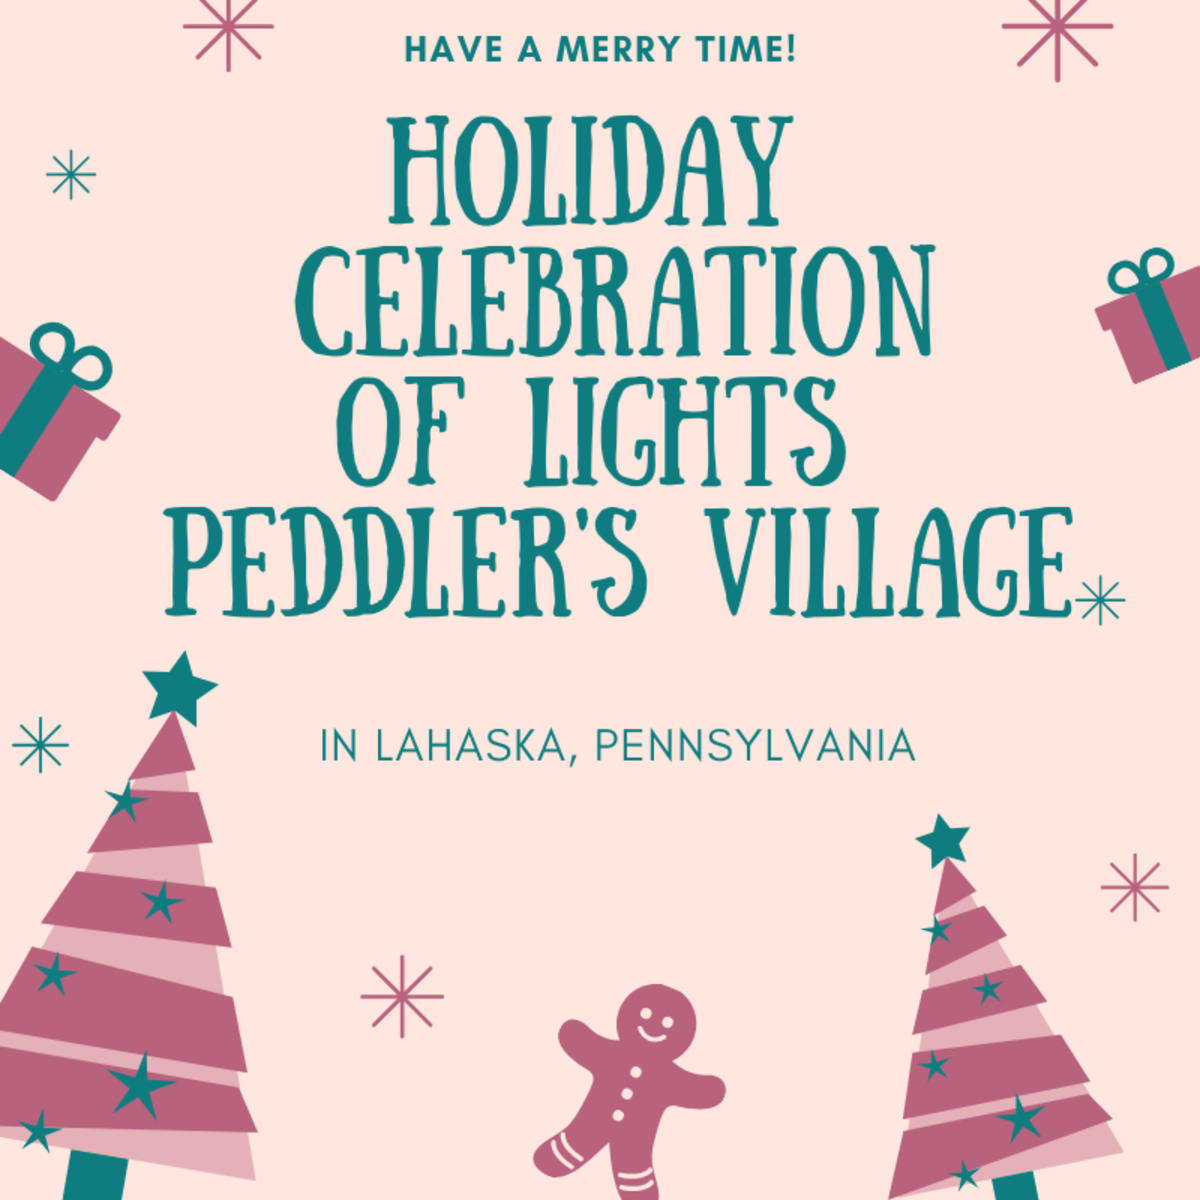 Holiday Celebration at Peddler's Village Lahaska Pennsylvania